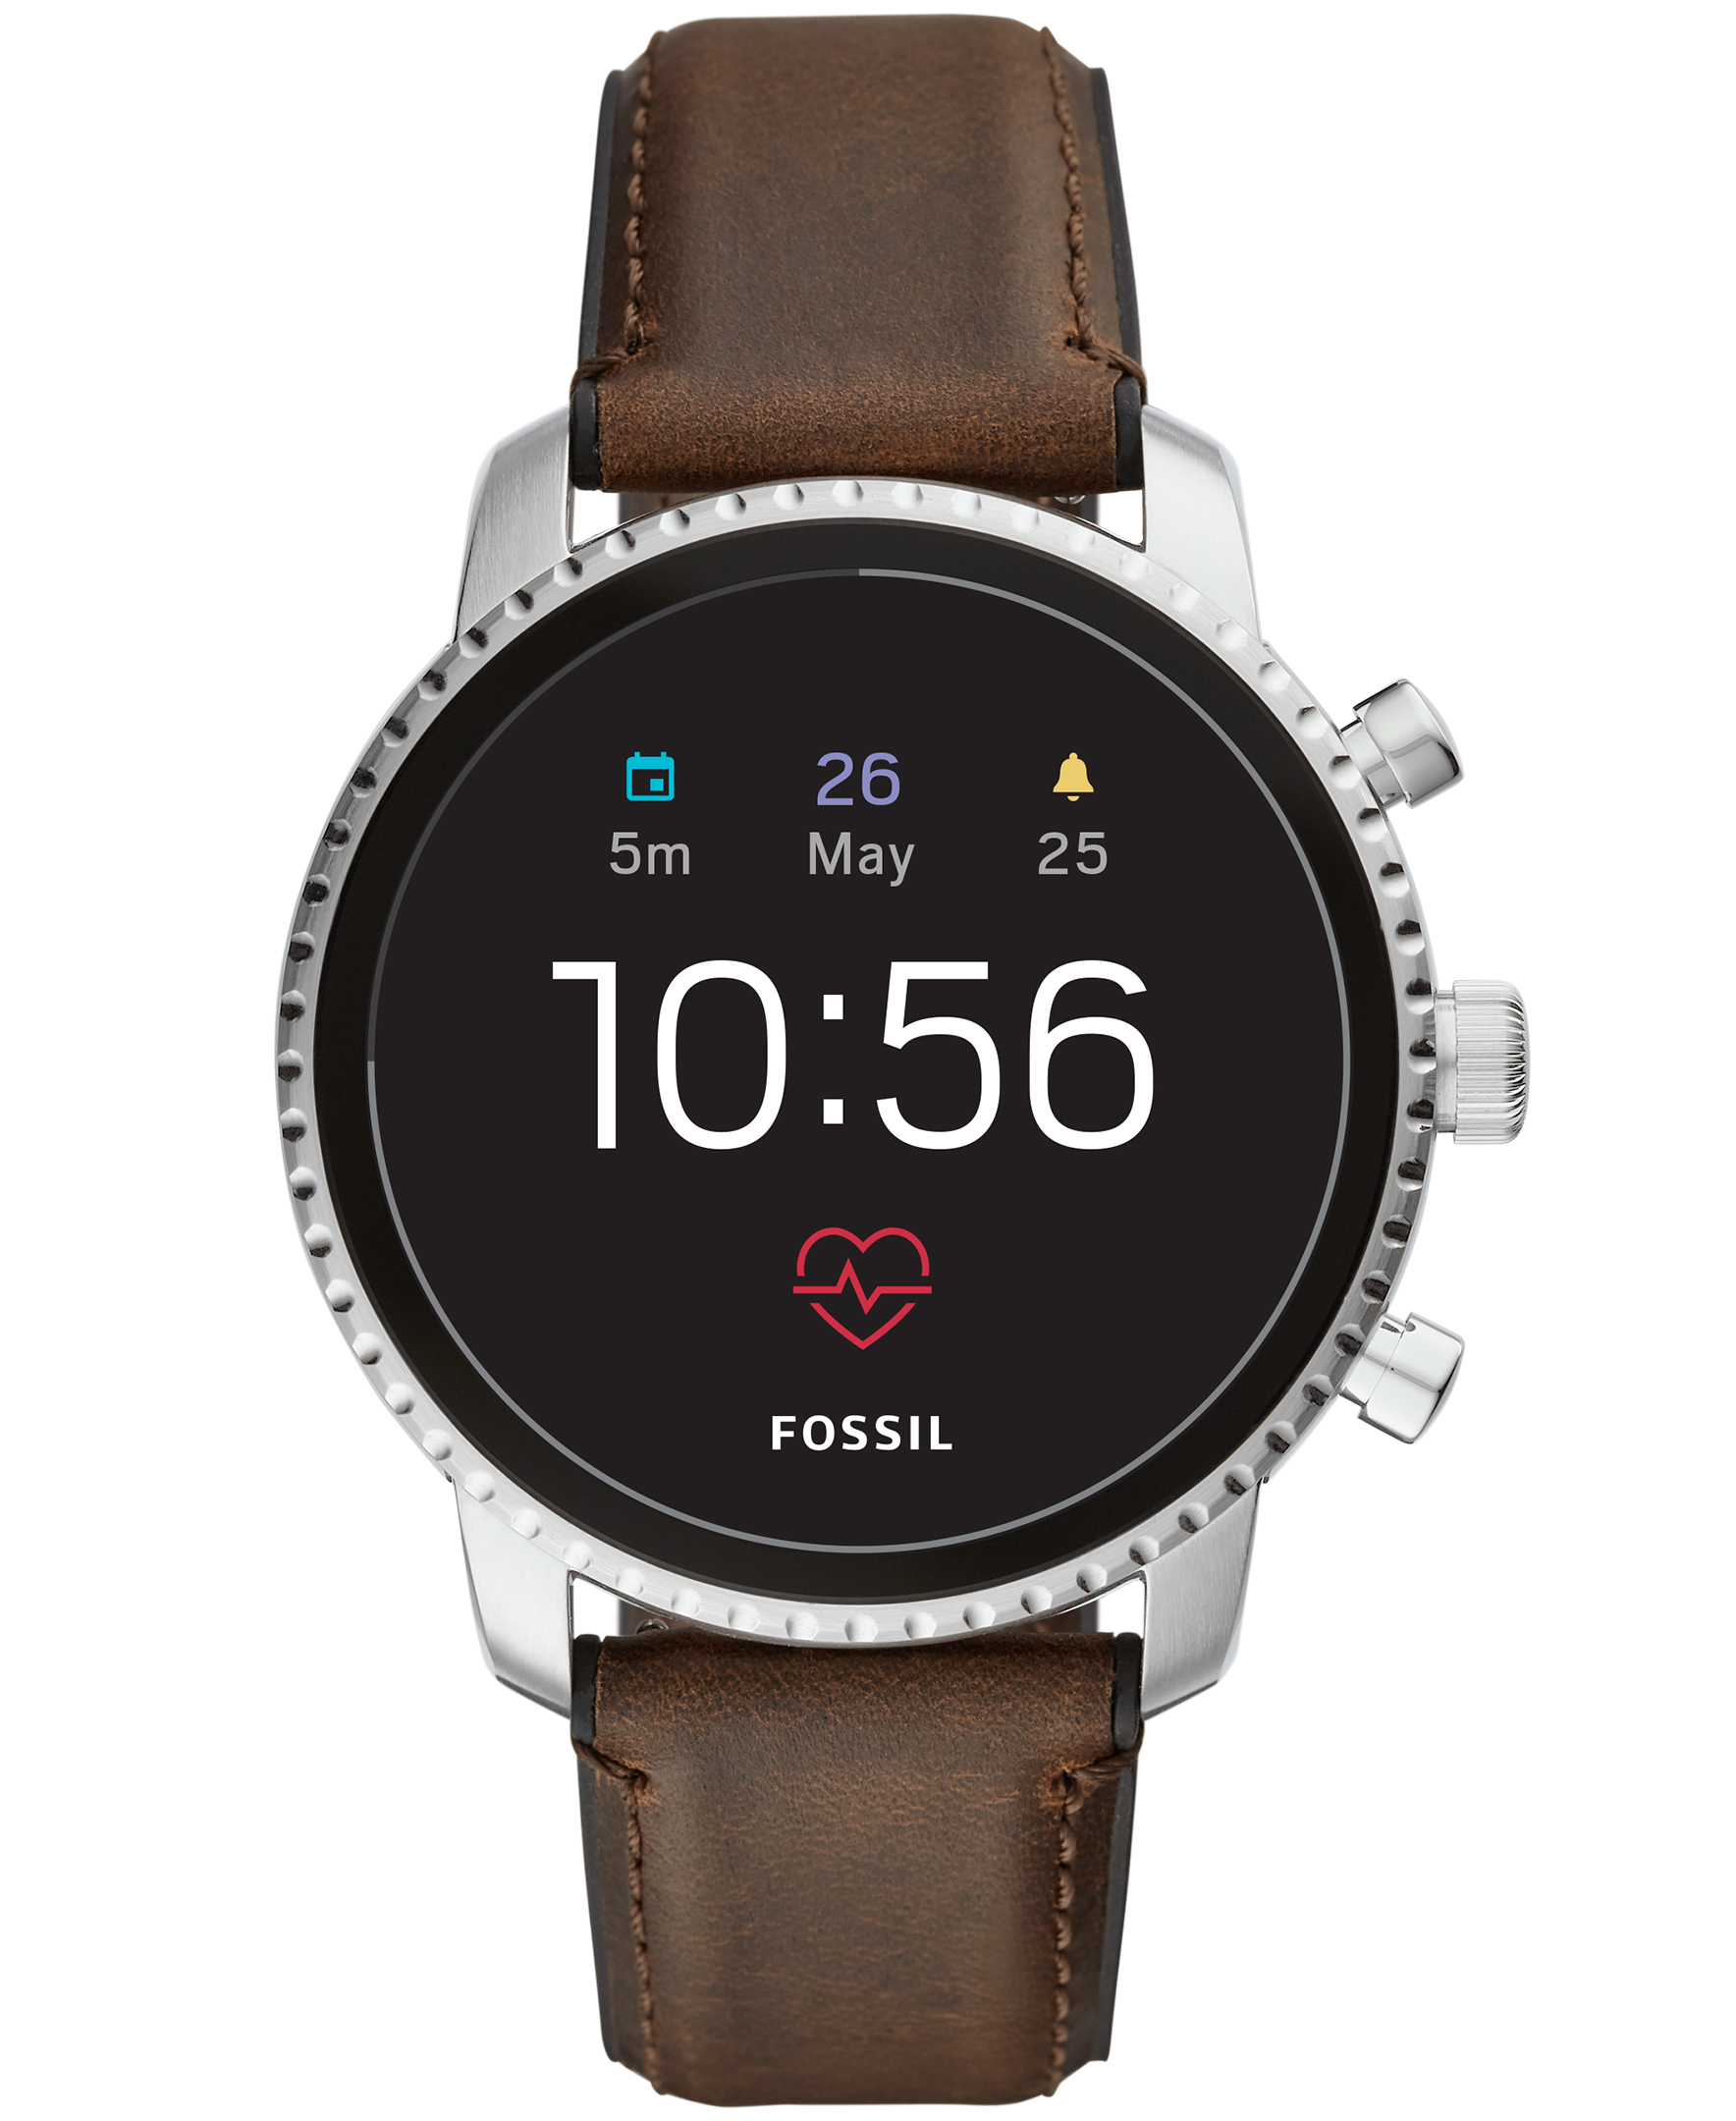 Fossil announces new Q Gen 4 smartwatch with Wear OS by Google